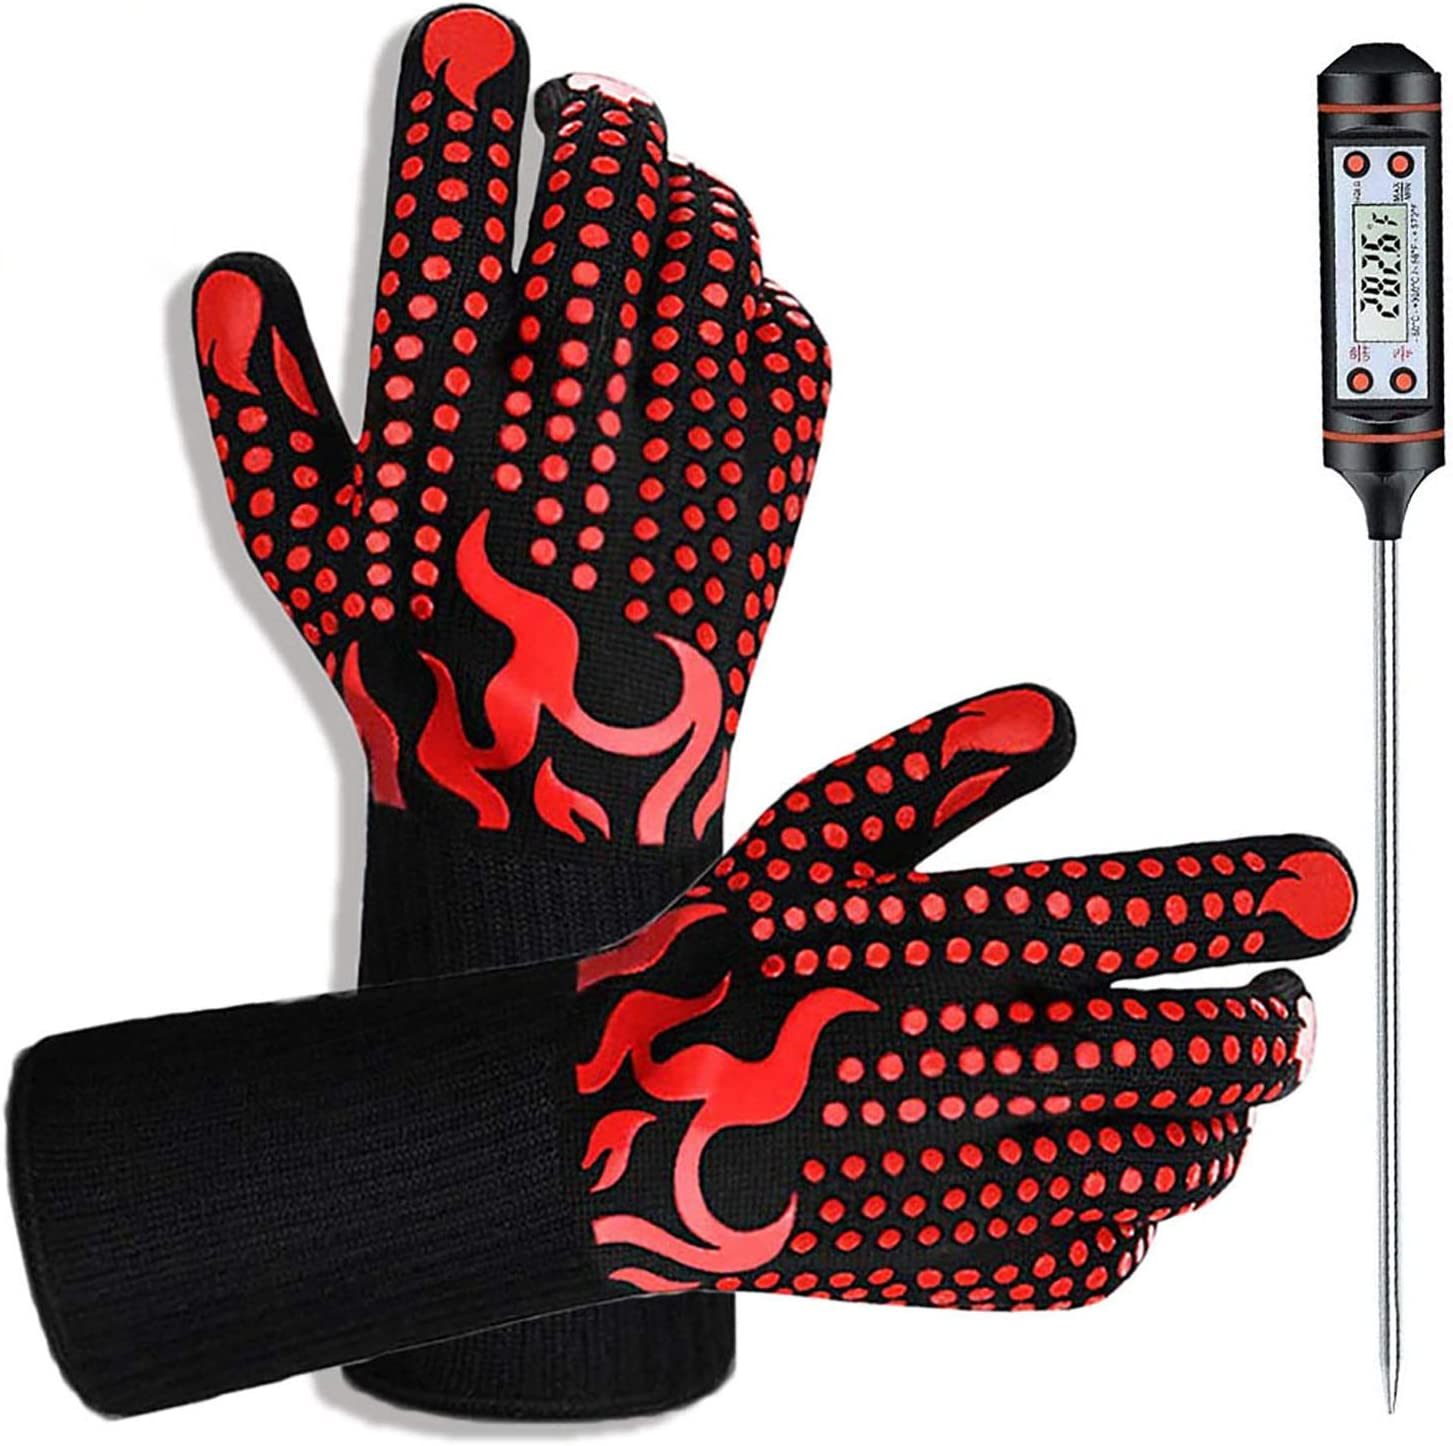 IVSUN BBQ Gloves,1472℉ Heat Resistant Protective Grill Gloves with Meat Thermometer, Silicone Non-Slip Cooking Oven Mitts Kitchen Grilling Gloves for Barbecue/Baking/Welding: Kitchen & Dining